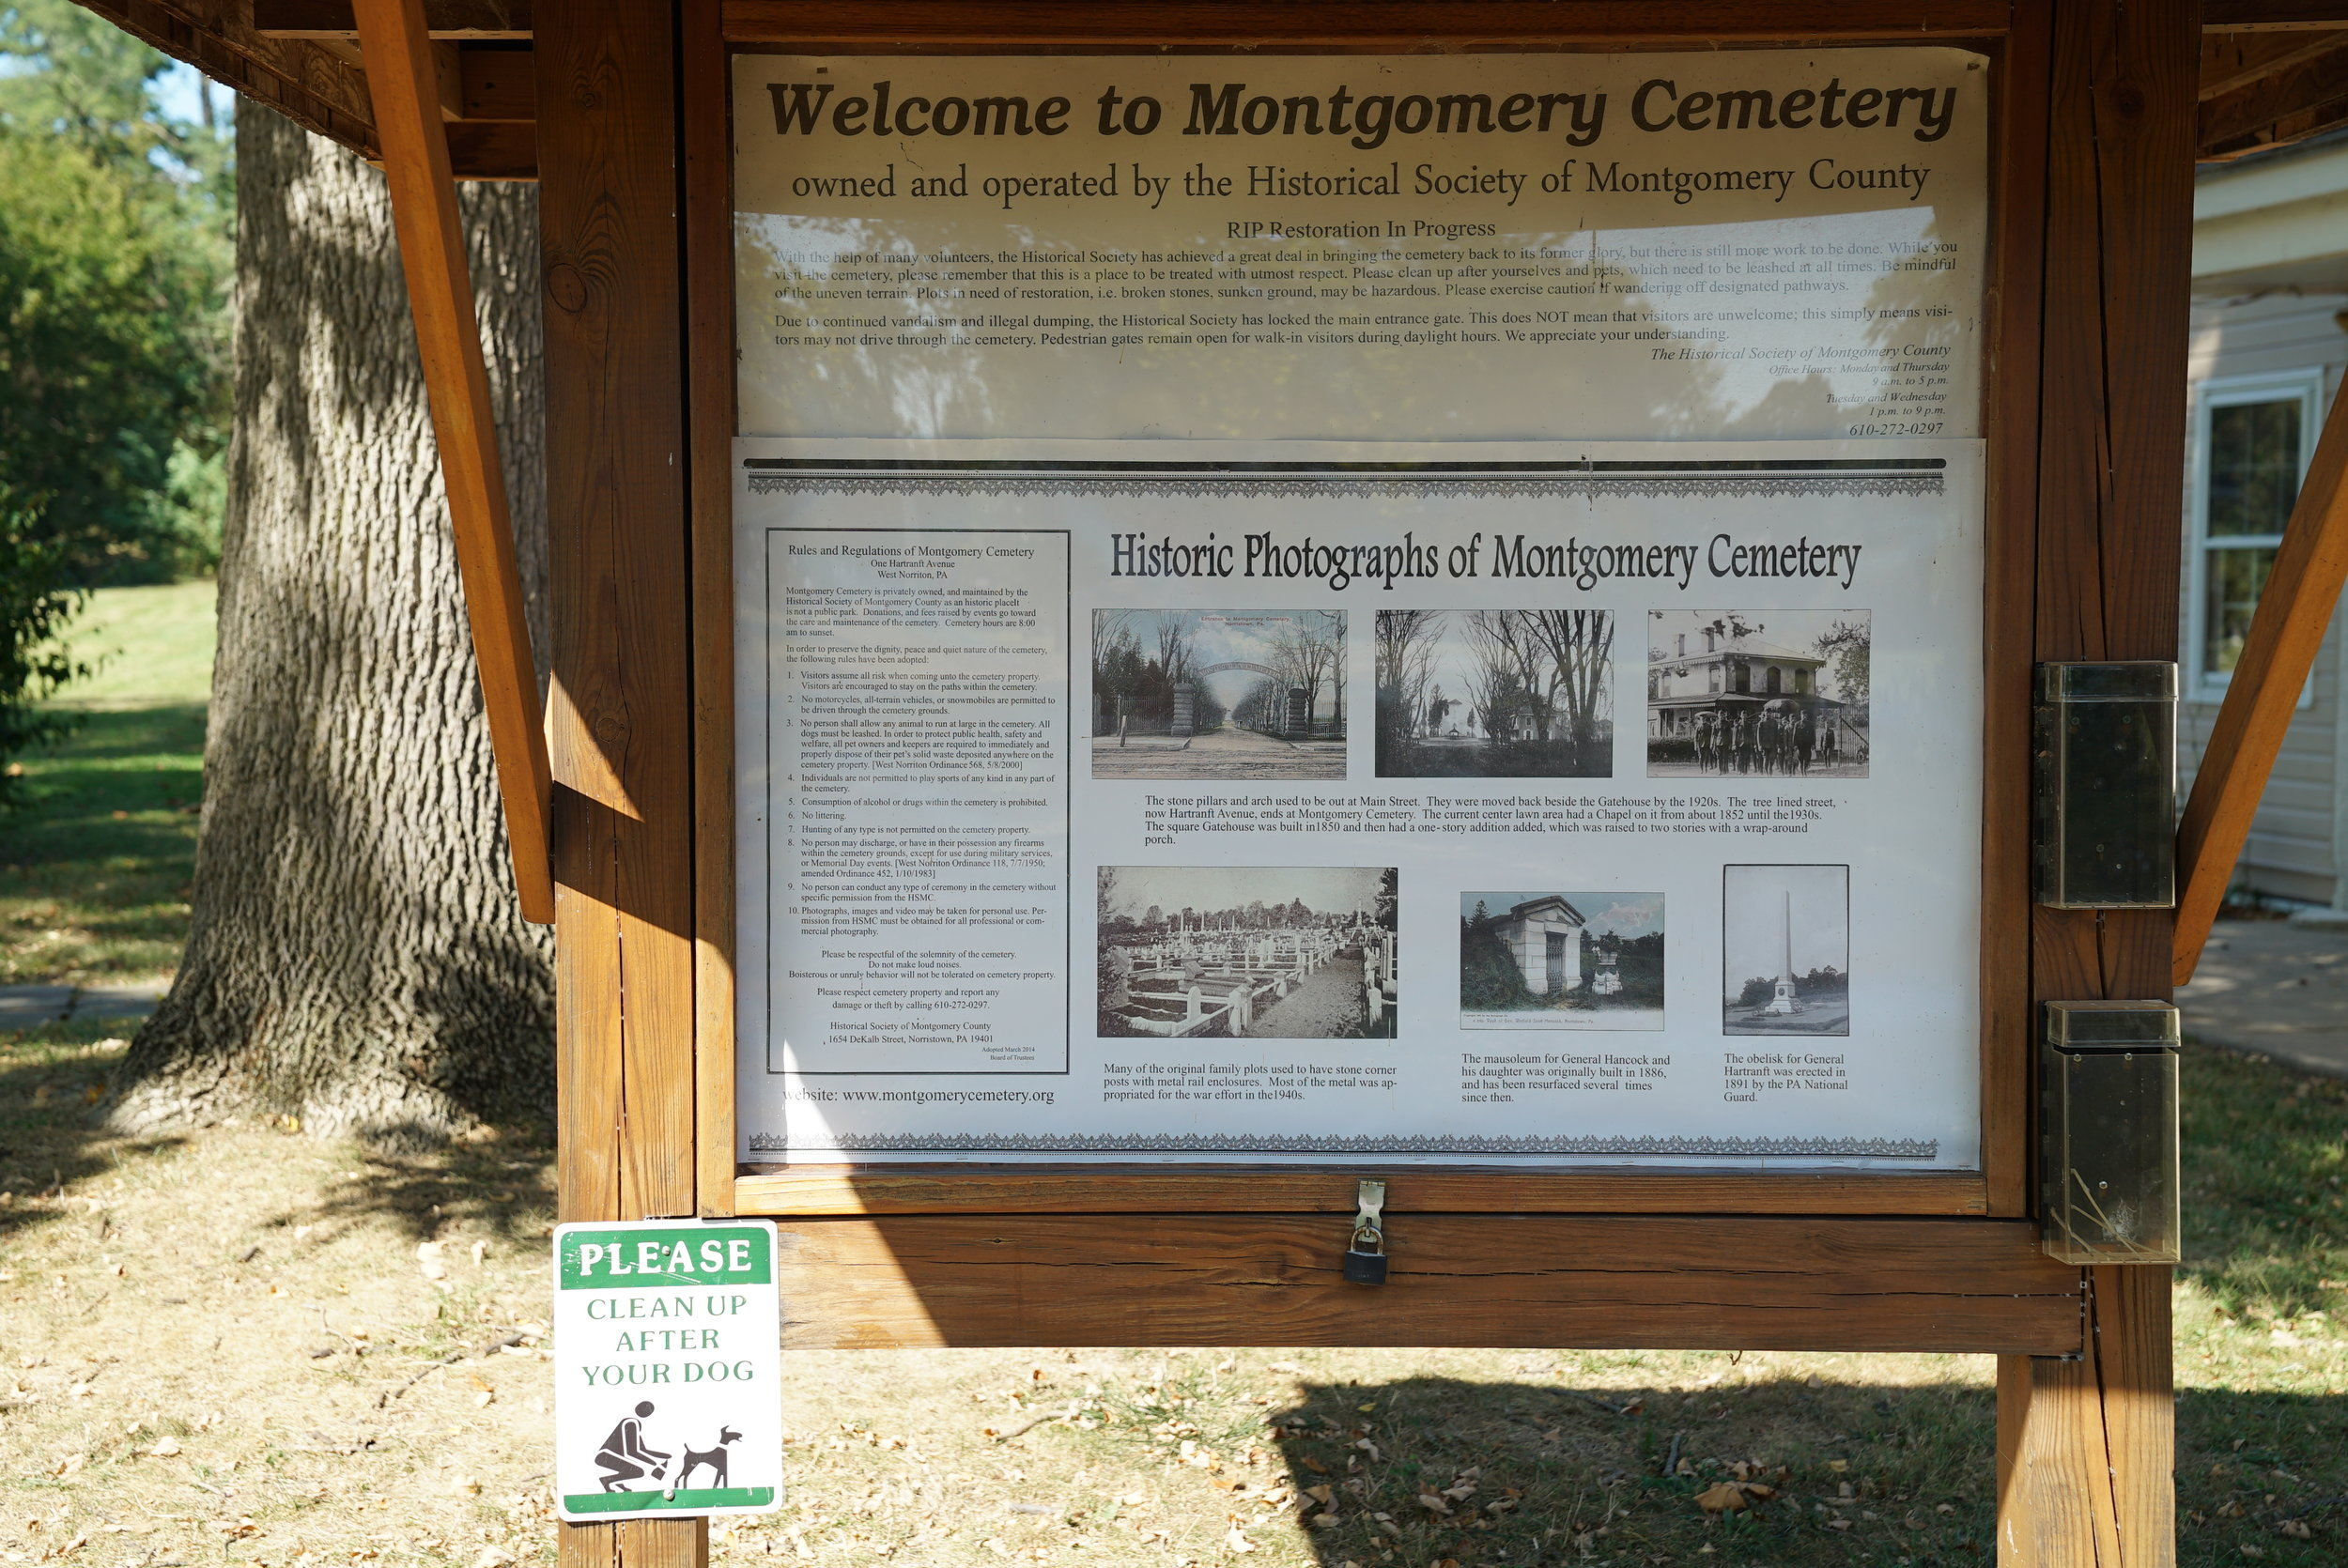 Information posted at the entrance to Montgomery Cemetery. West Norriton Township, Pennsylvania.